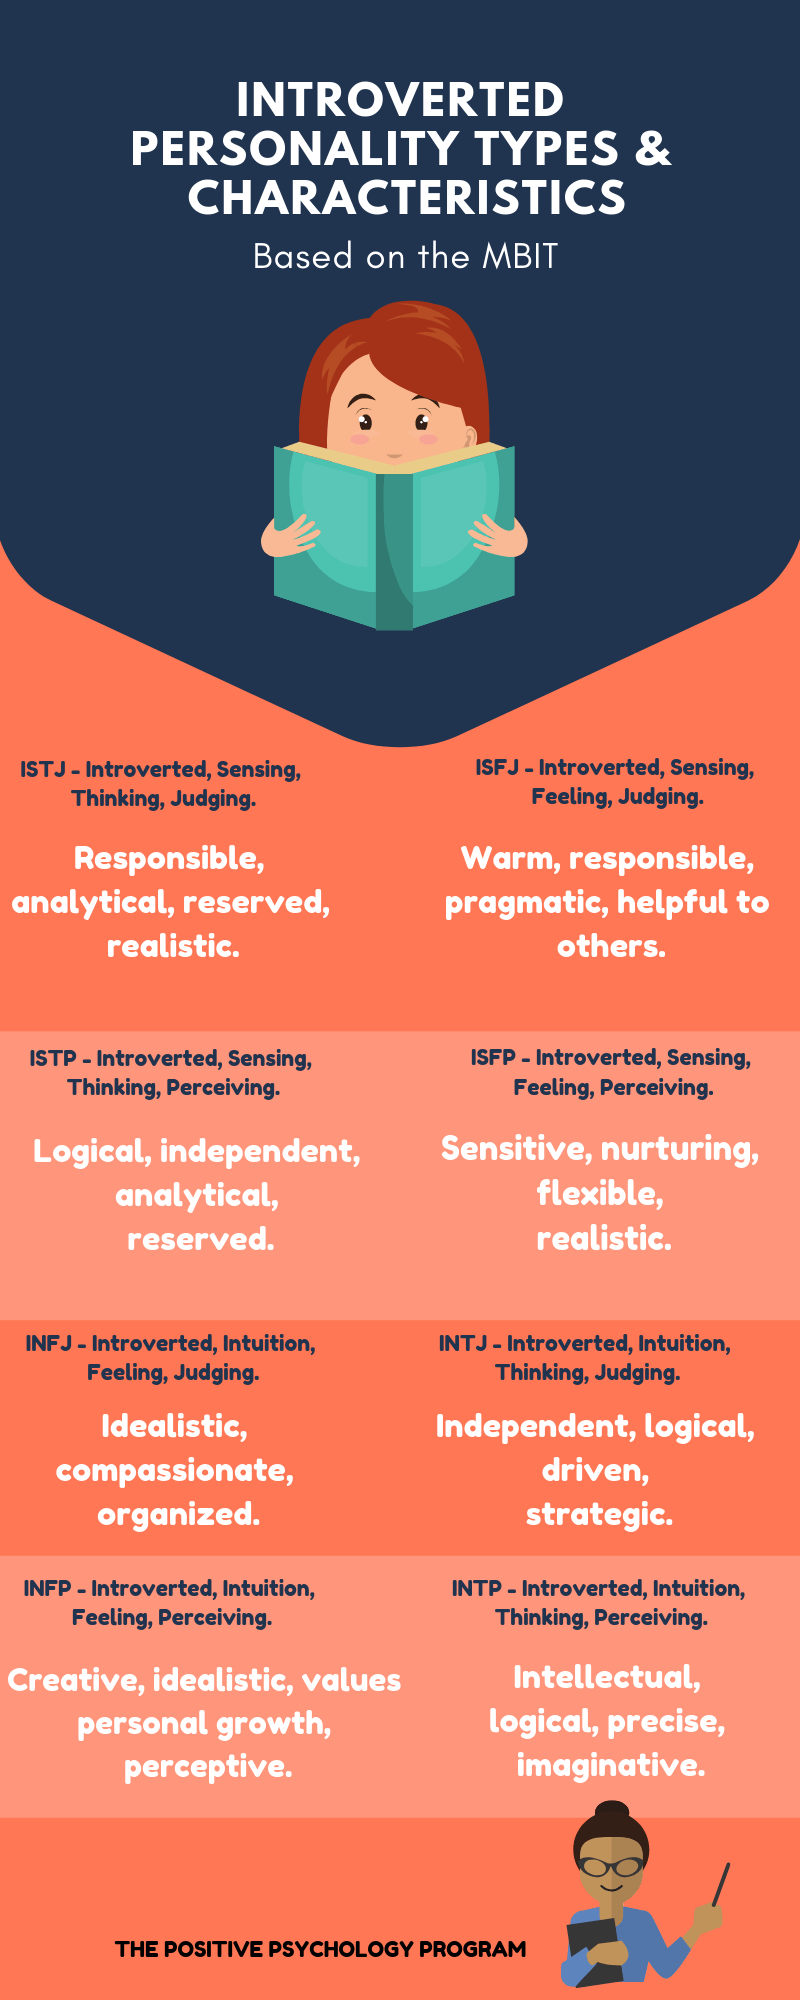 Introverted Personality Types & Characteristics